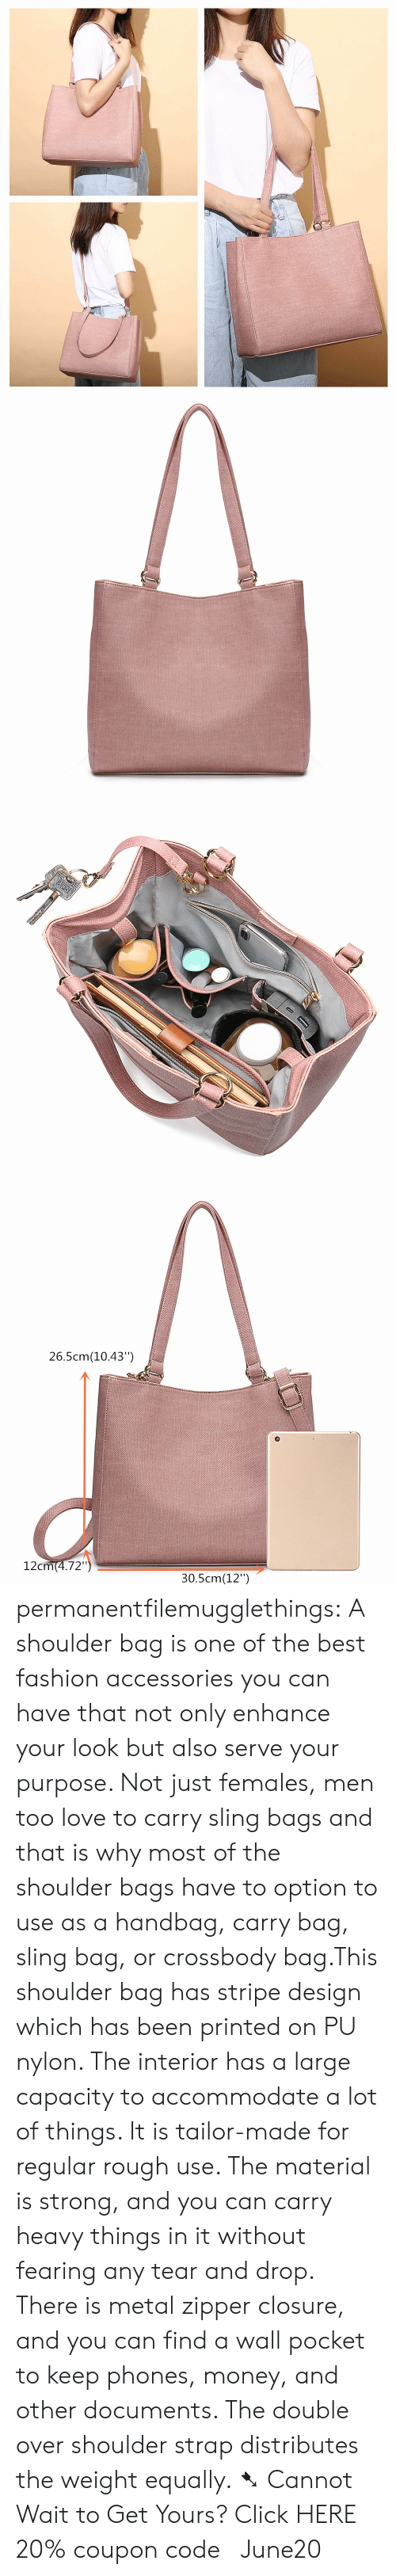 """handbag: 26.5cm(10.43"""")  12cm(4.72"""")  30.5cm(12"""") permanentfilemugglethings: A shoulder bag is one of the best fashion accessories you can have that not only enhance your look but also serve your purpose. Not just females, men too love to carry sling bags and that is why most of the shoulder bags have to option to use as a handbag, carry bag, sling bag, or crossbody bag.This shoulder bag has stripe design which has been printed on PU nylon. The interior has a large capacity to accommodate a lot of things. It is tailor-made for regular rough use. The material is strong, and you can carry heavy things in it without fearing any tear and drop. There is metal zipper closure, and you can find a wall pocket to keep phones, money, and other documents. The double over shoulder strap distributes the weight equally. ➷ Cannot Wait to Get Yours? Click HERE 20% coupon code: June20"""